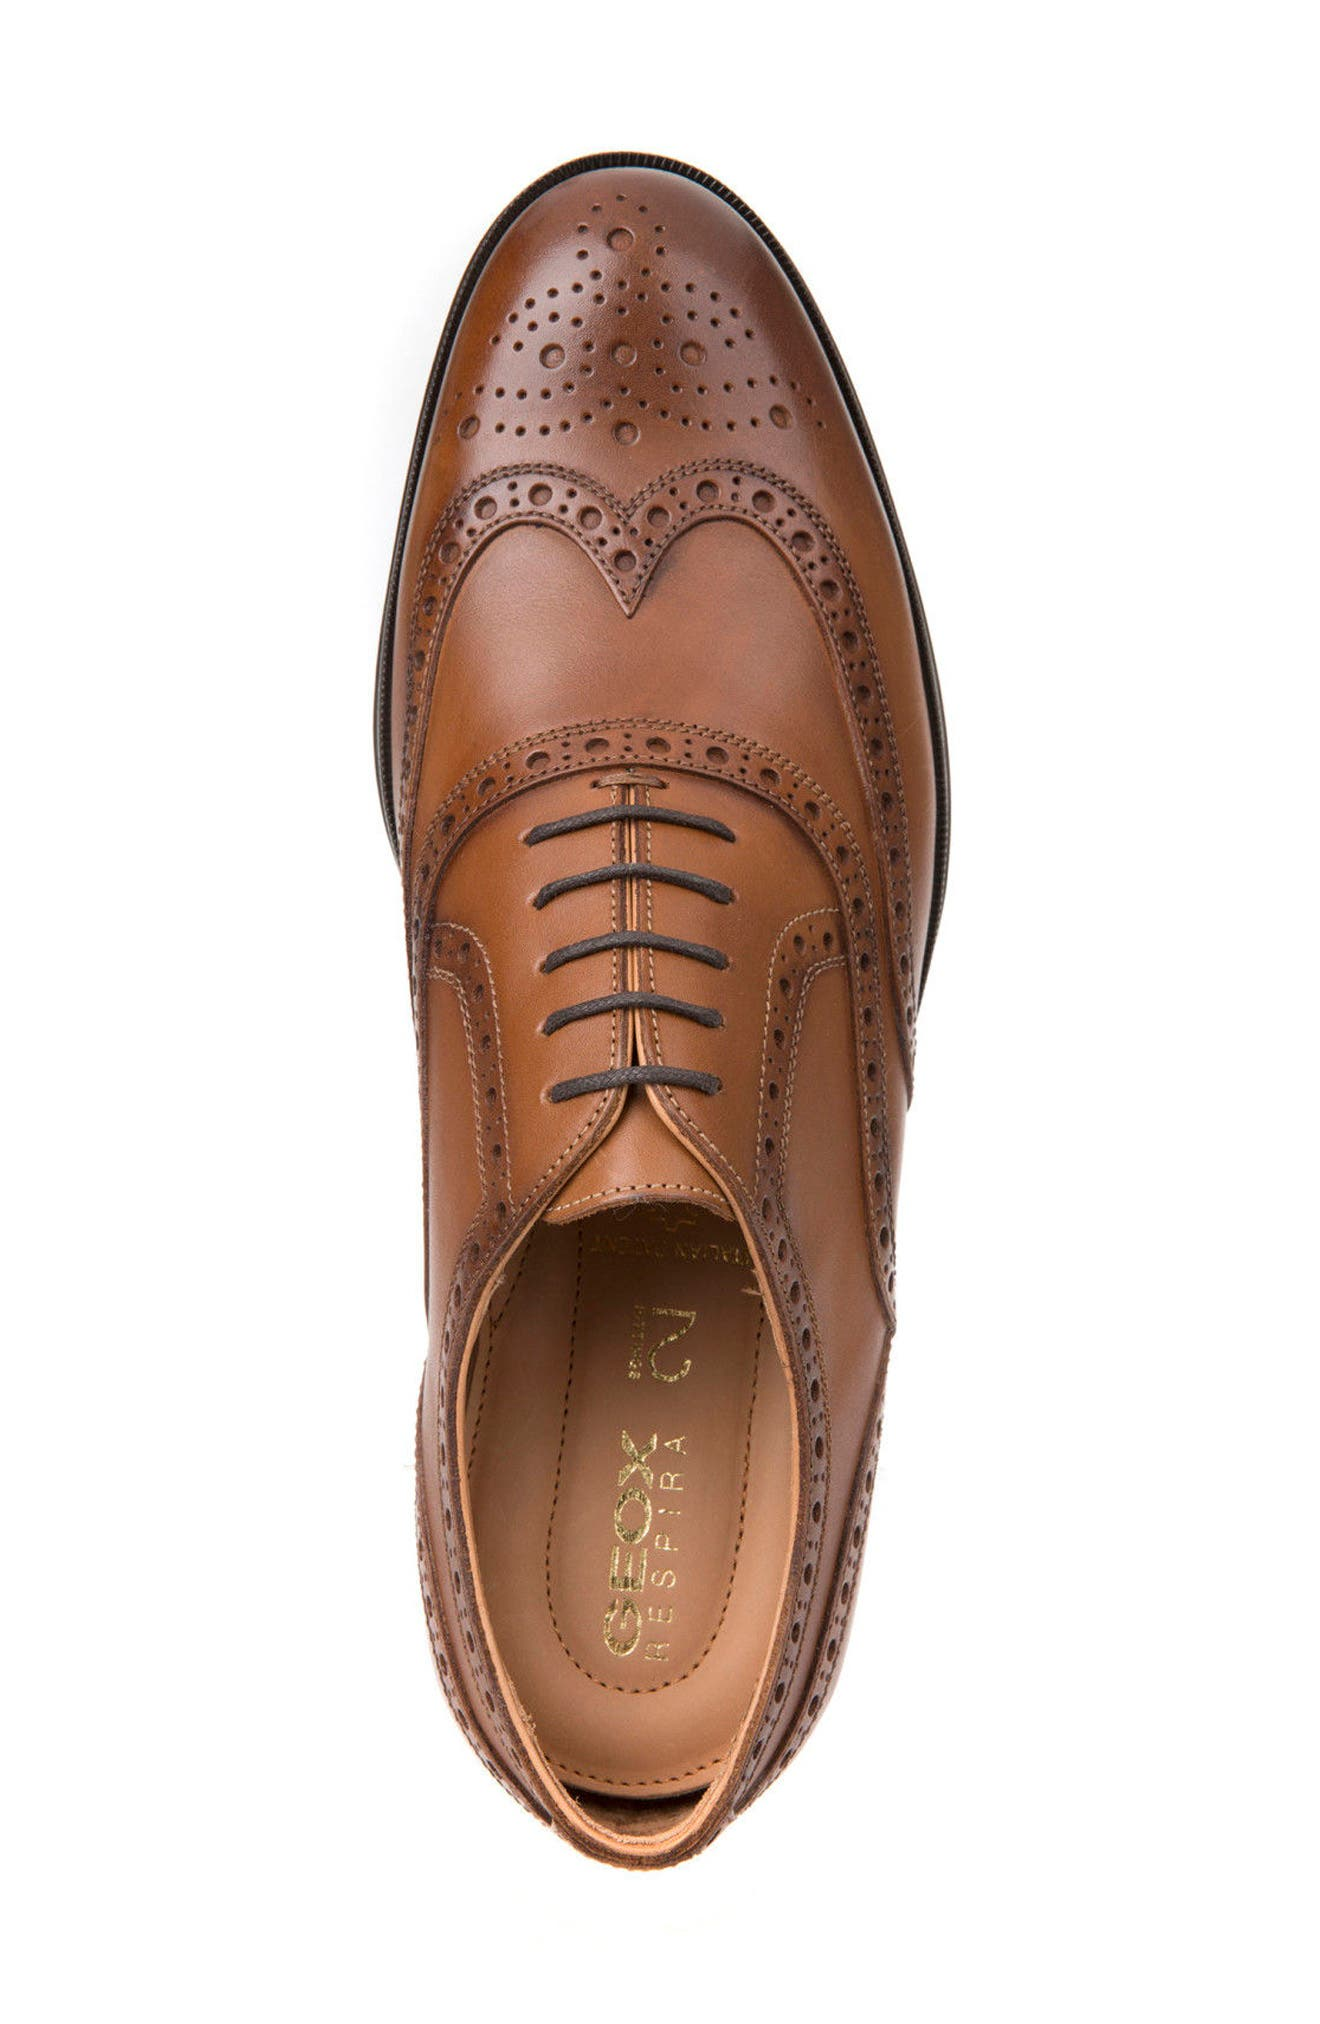 Hilstone 2Fit 2 Wingtip Oxford,                             Alternate thumbnail 5, color,                             Cognac Leather